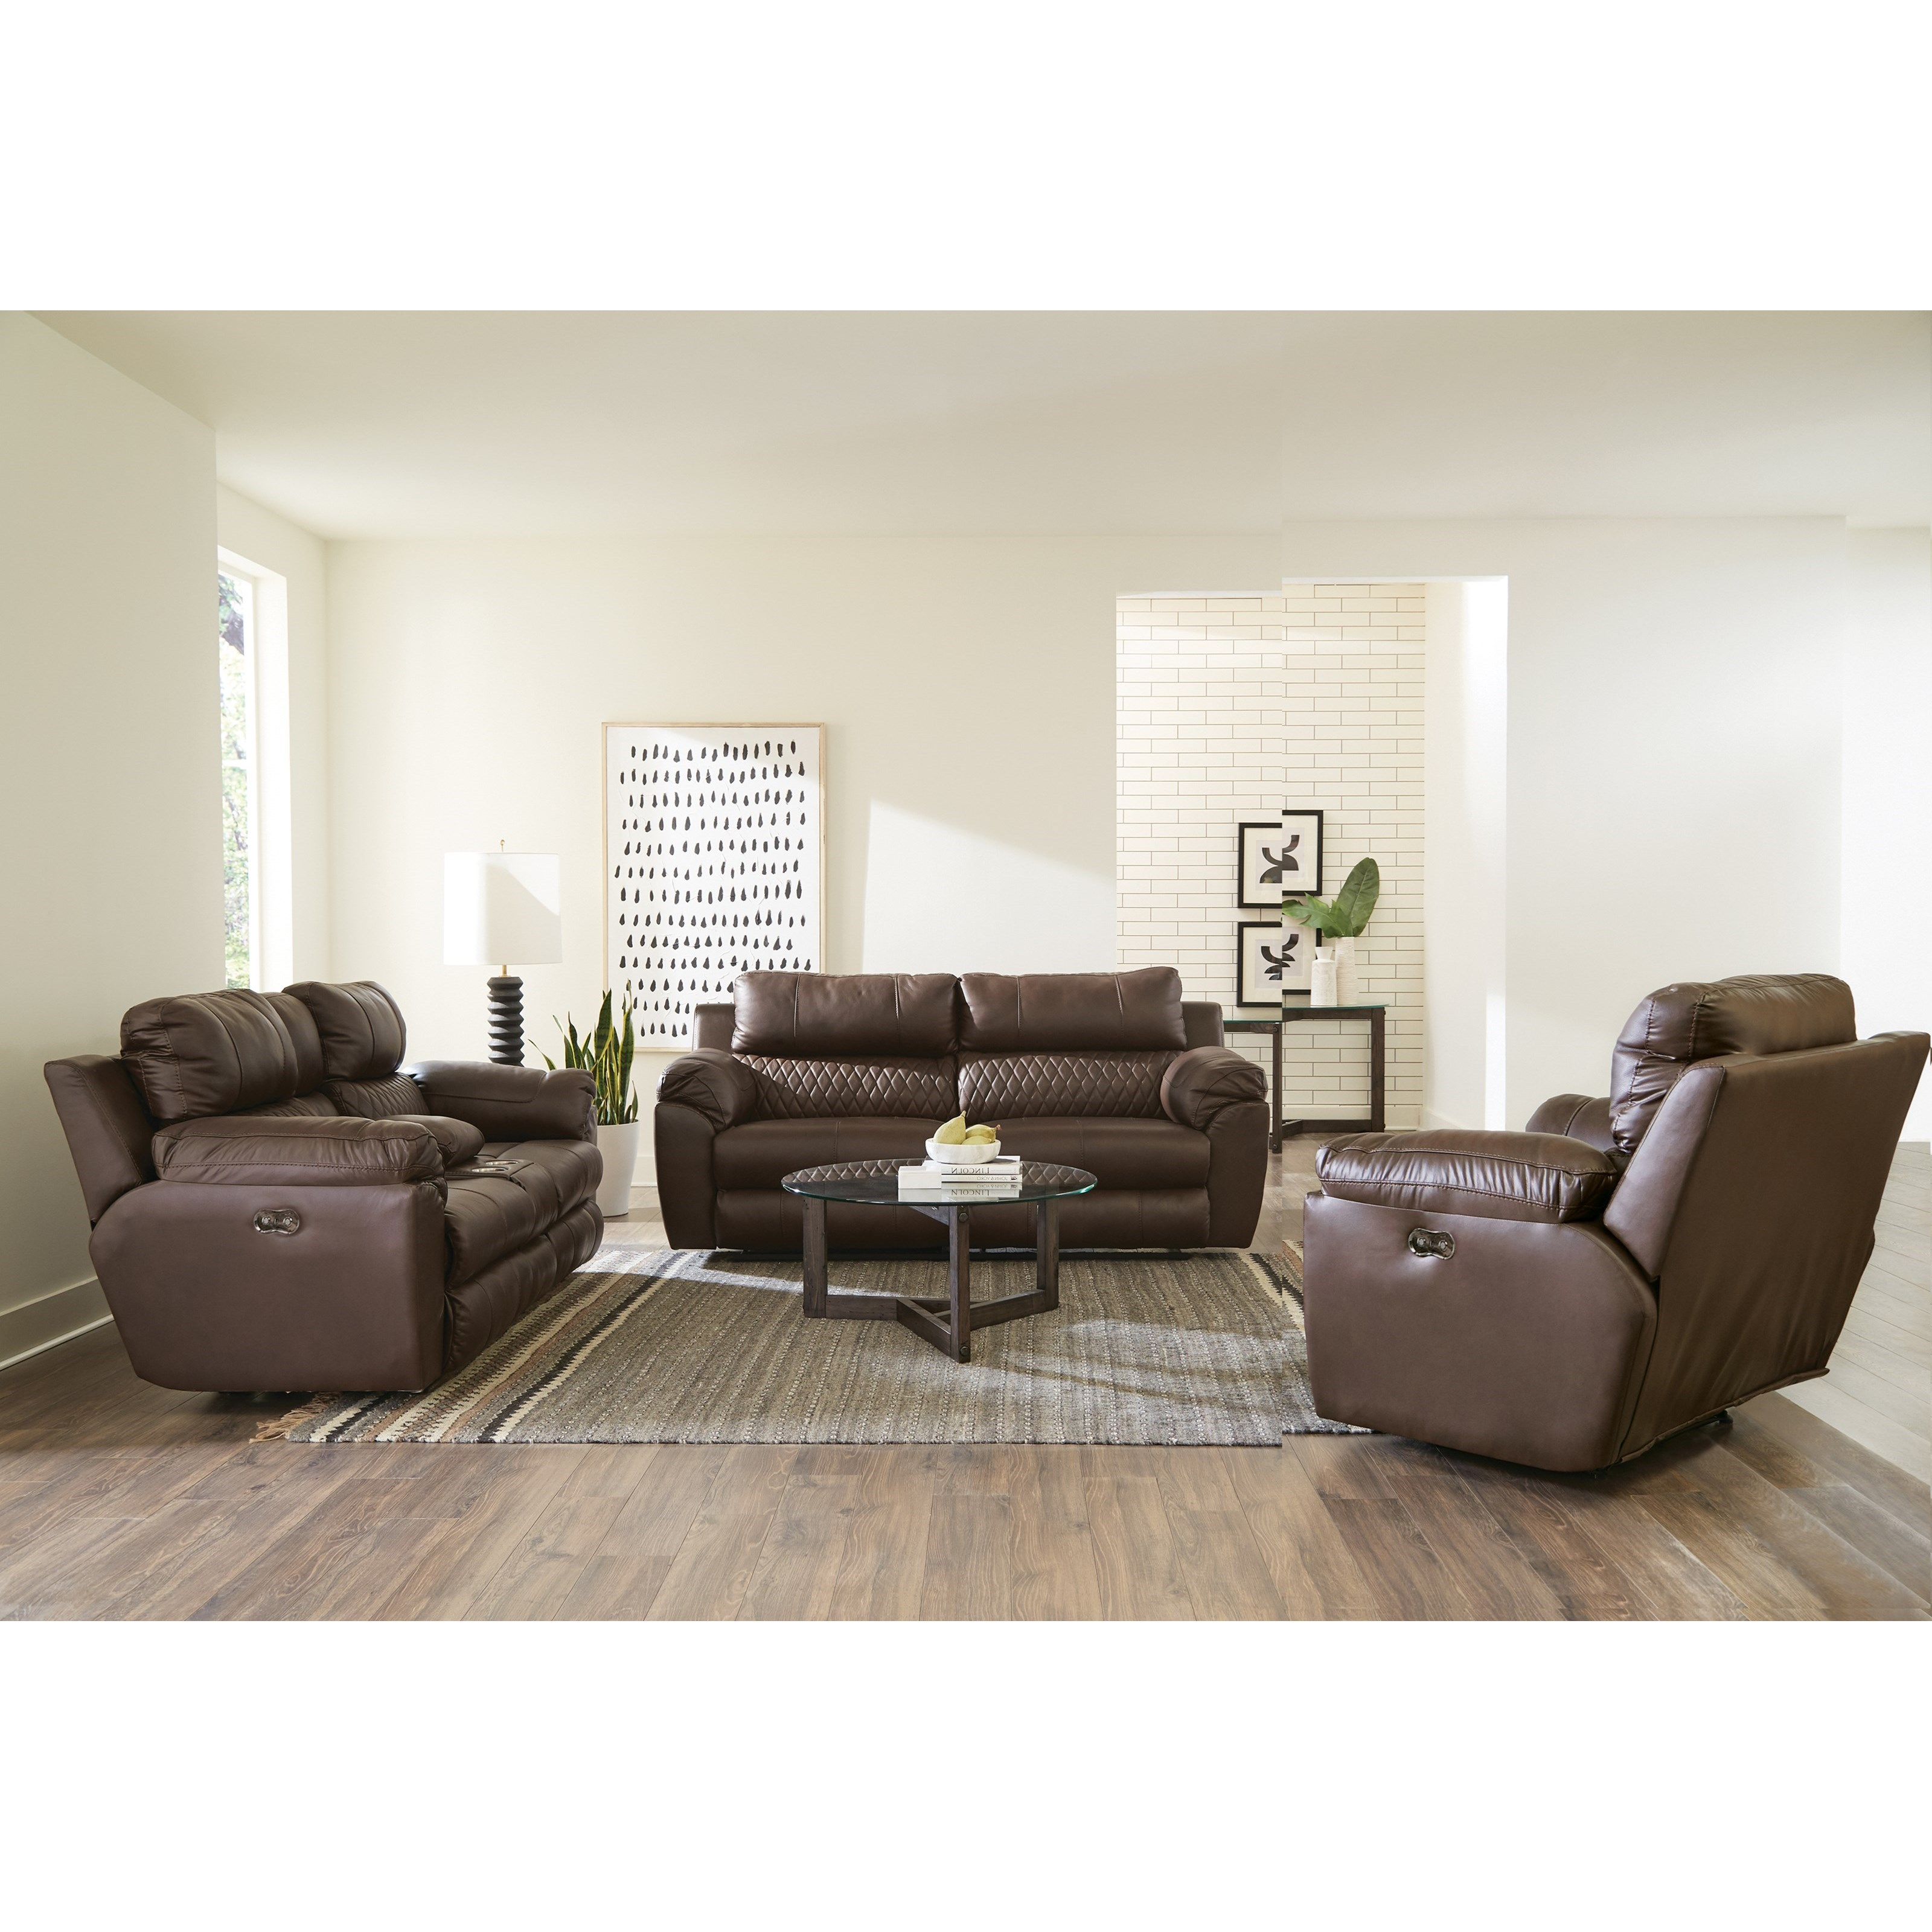 Sorrento Power Reclining Living Room Group by Catnapper at Northeast Factory Direct